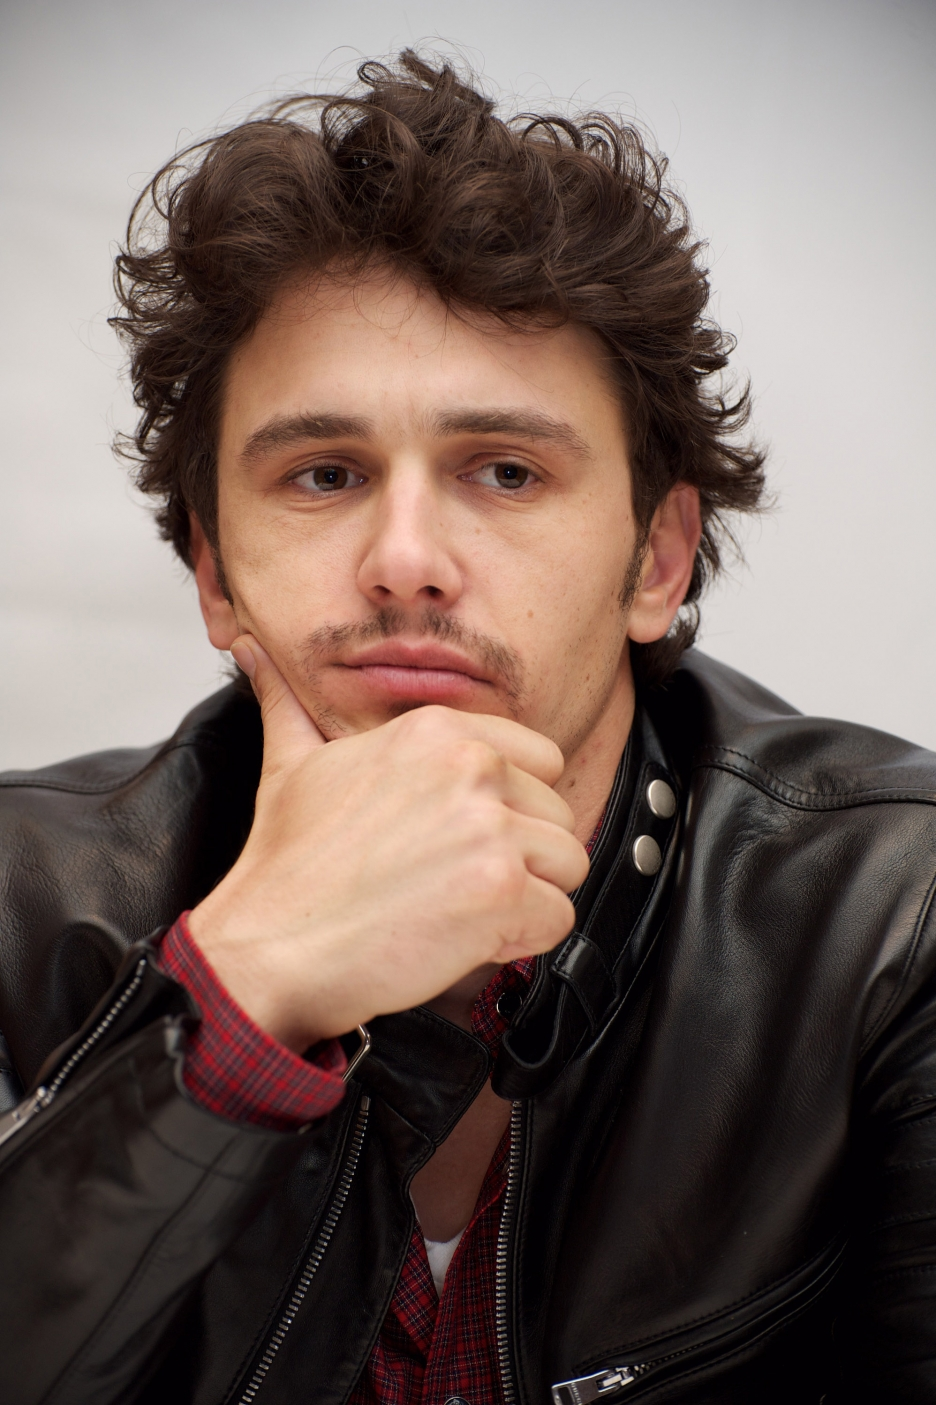 http://cdn.mhpbooks.com/uploads/2013/05/936full-james-franco.jpg